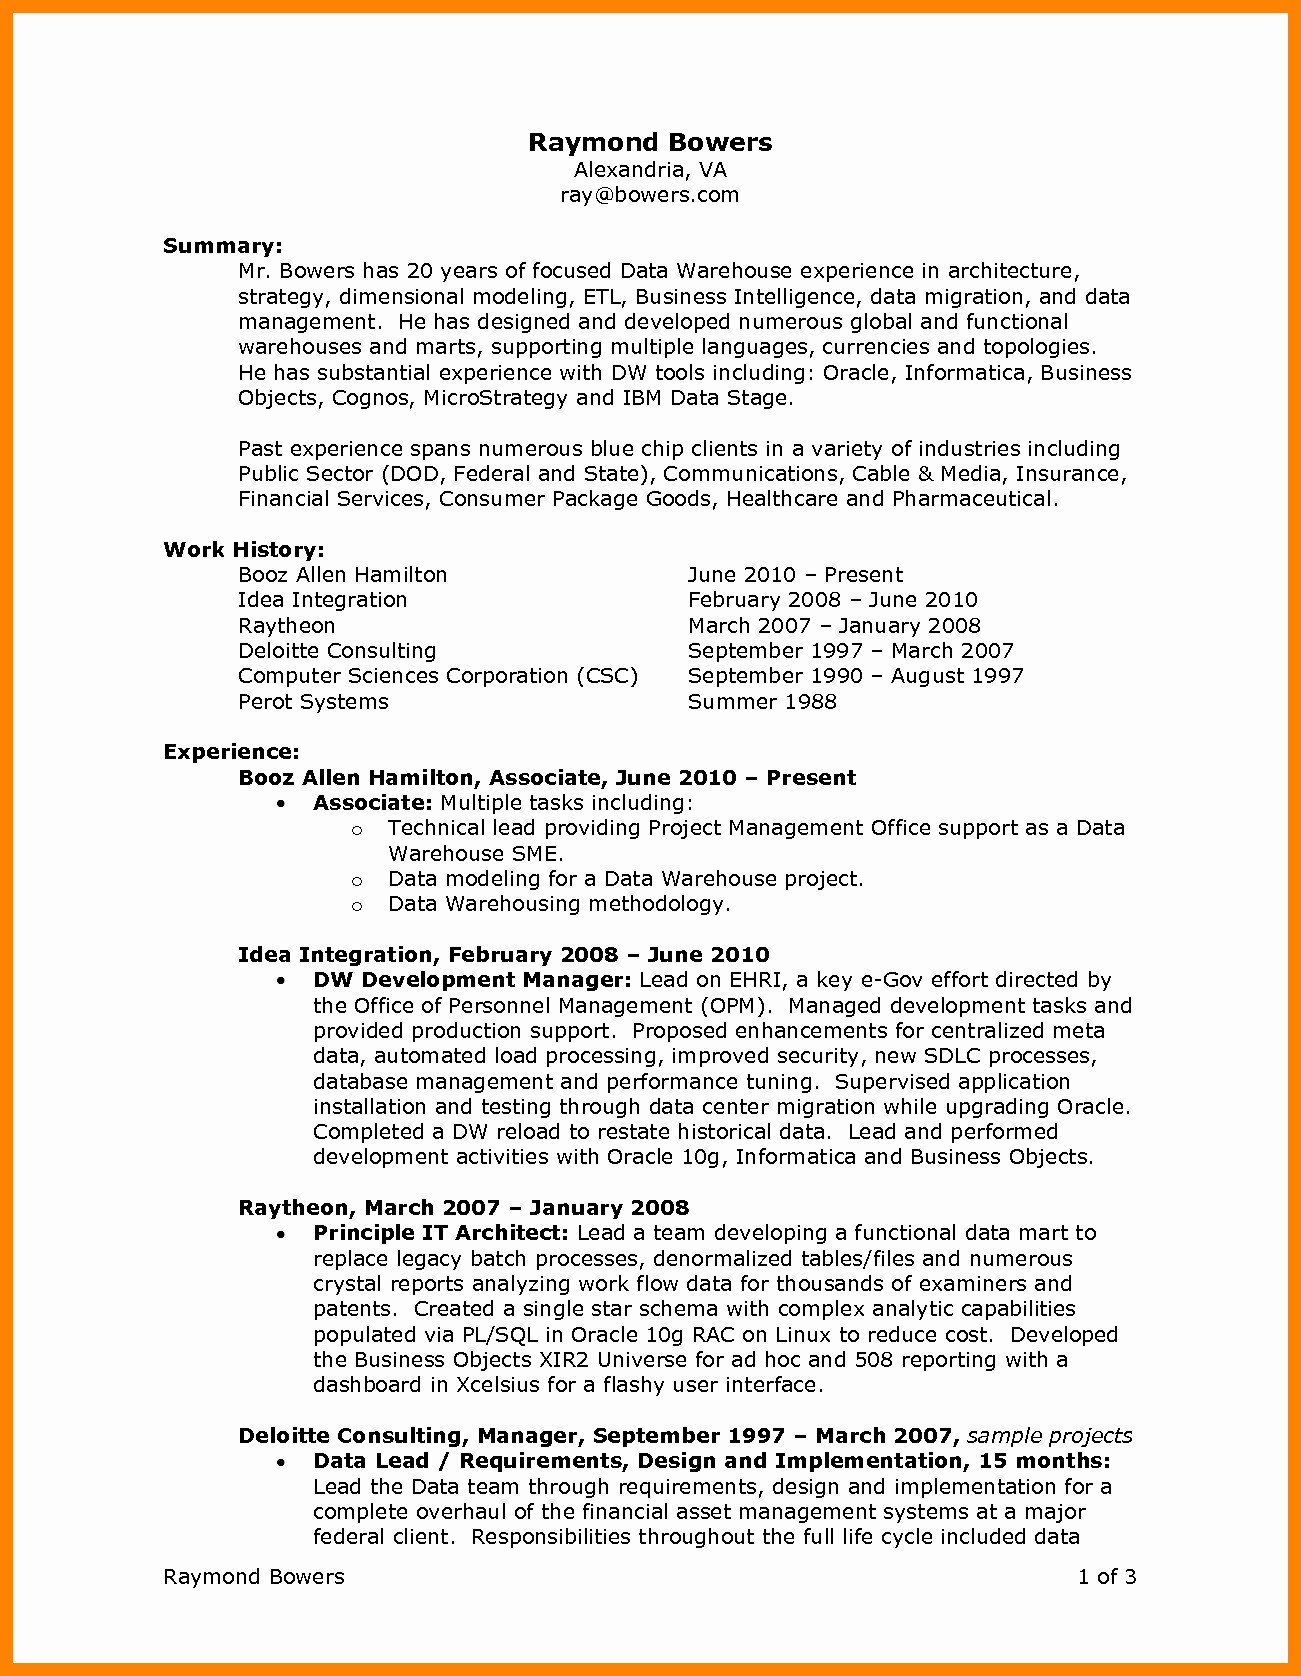 Service Industry Resume Sample - Resume for Internal Promotion Template Free Downloads Beautiful